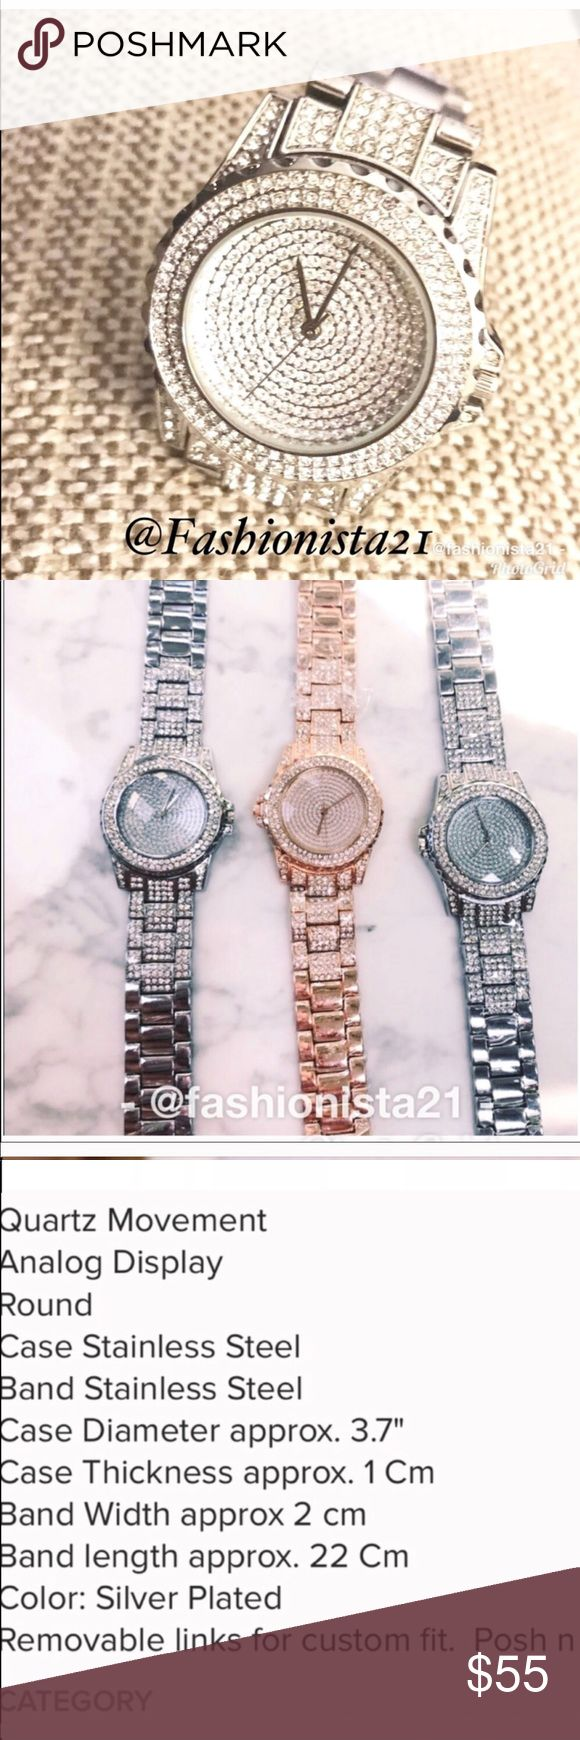 Crystal SILVER Bling Watch A real Statement piece. Quality watch. I have this watch and get constantly complimented. Comes with a box. New without tag. Makes a great gift or a gift for yourself.  Removable links for custom fit. GOLD for sale in separate listing. Fashionista21 Accessories Watches